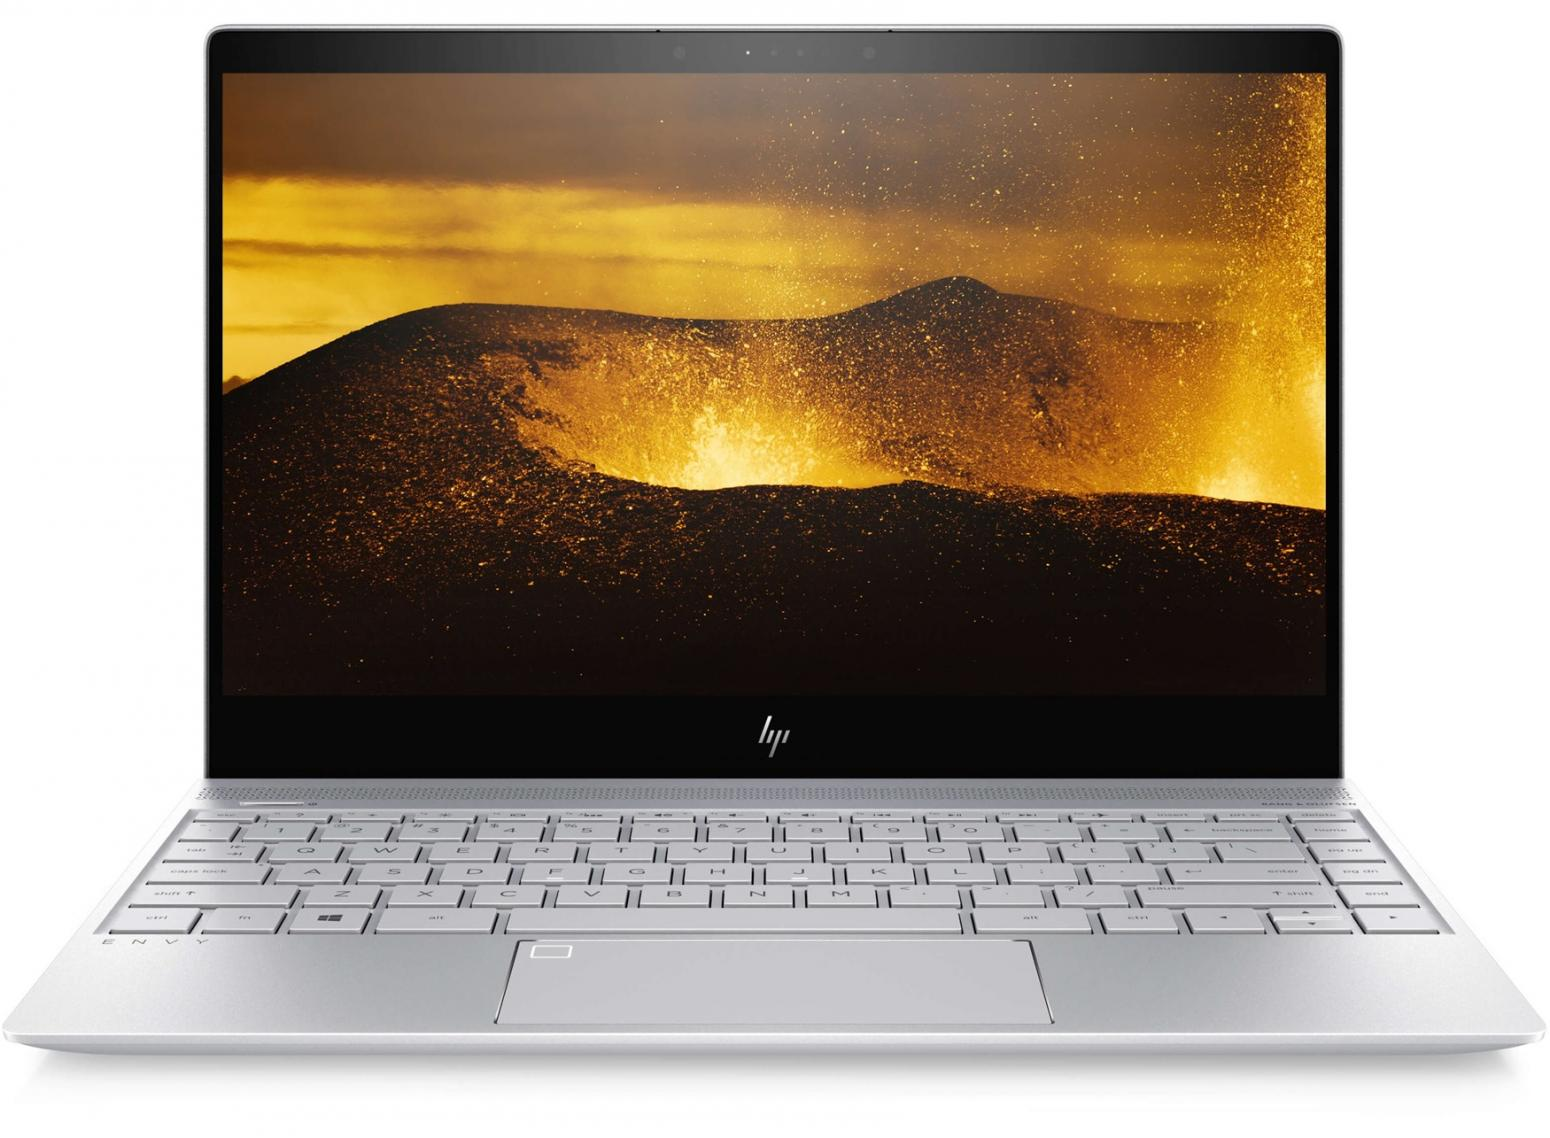 HP Envy 13-ad007nf, ultrabook 13 pouces SSD Full IPS i5 Kaby 10h (664€)